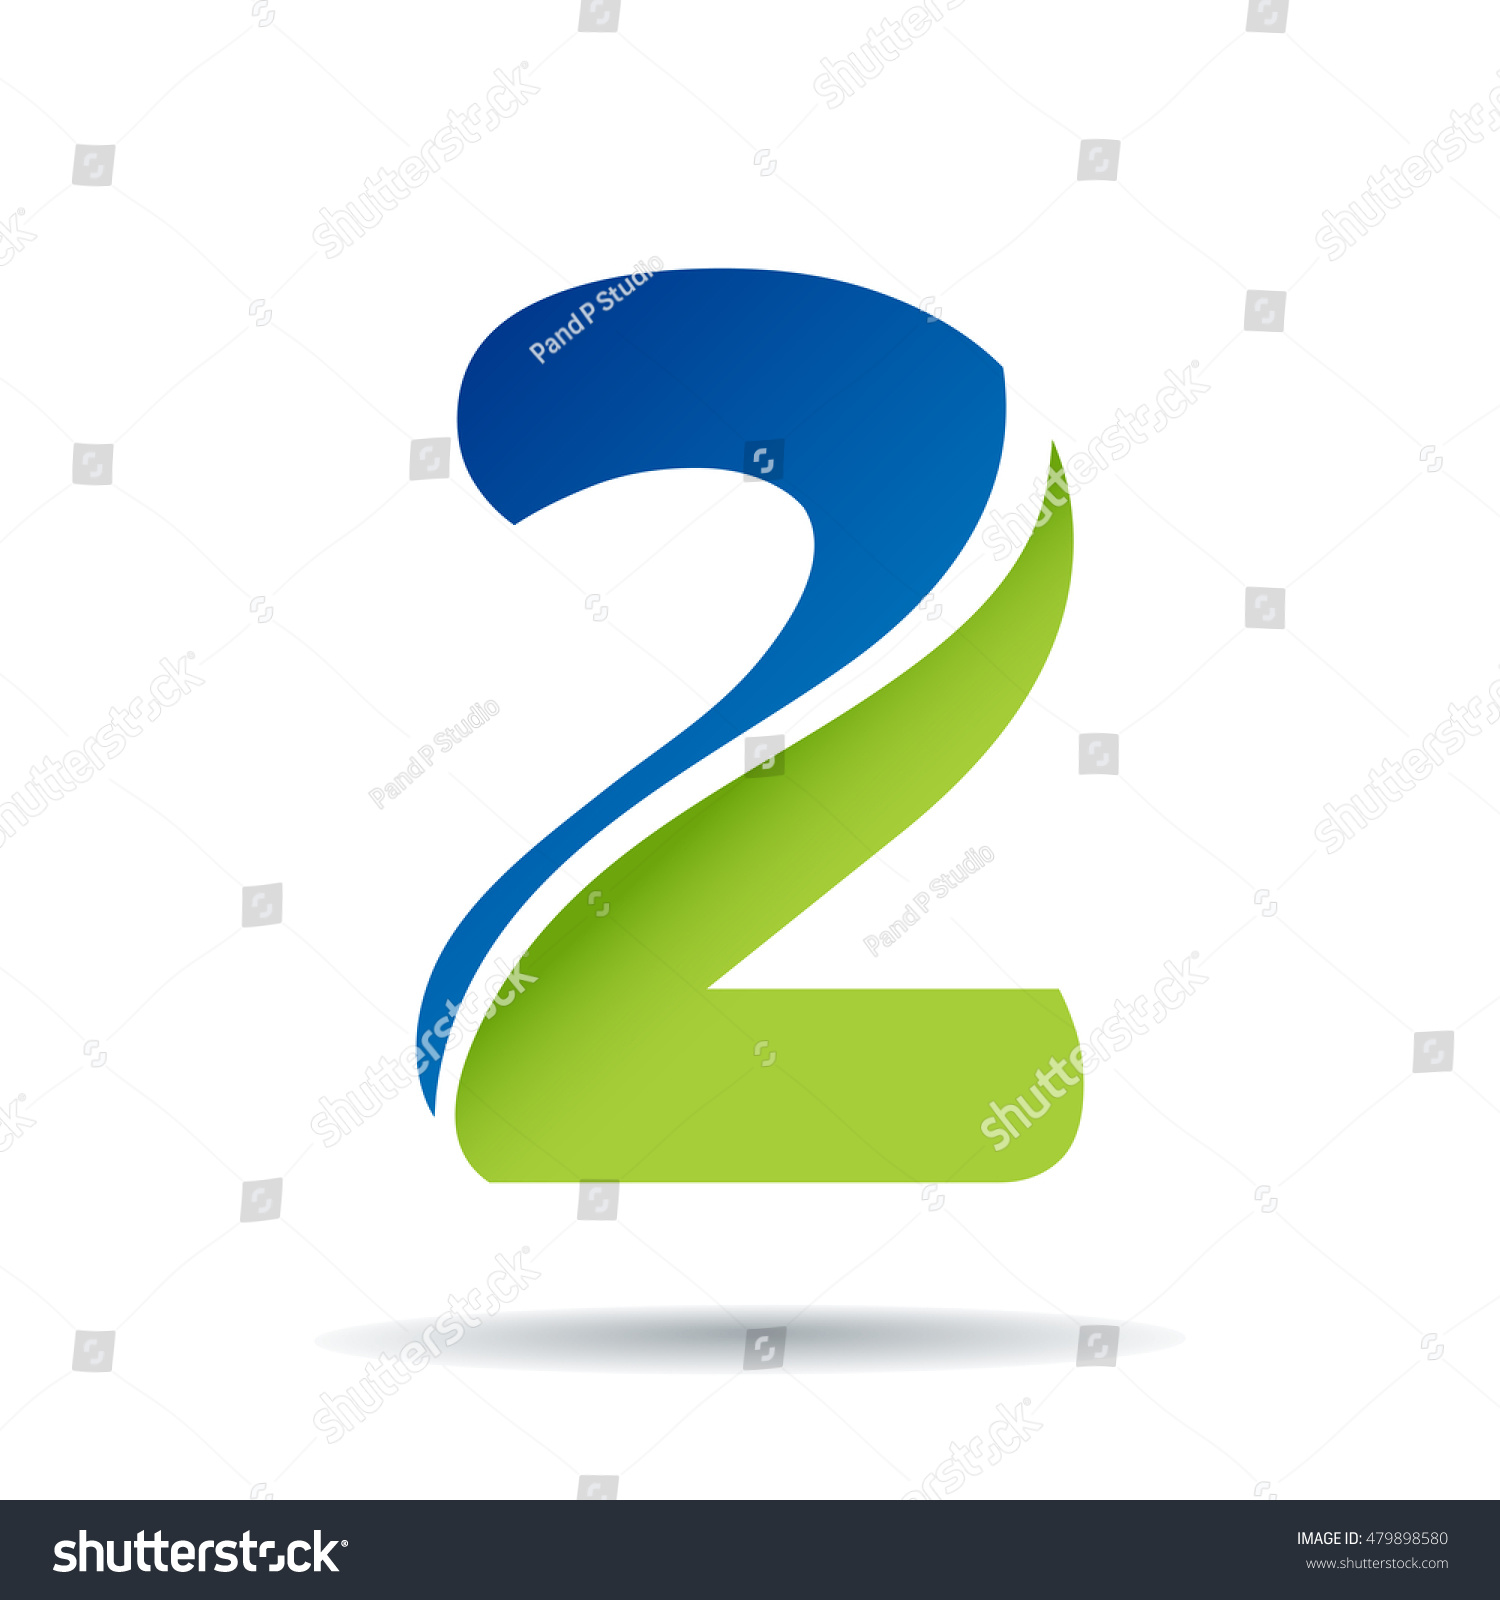 Number 2 logo icon design template stock vector 479898580 number 2 logo icon design template elements pronofoot35fo Gallery